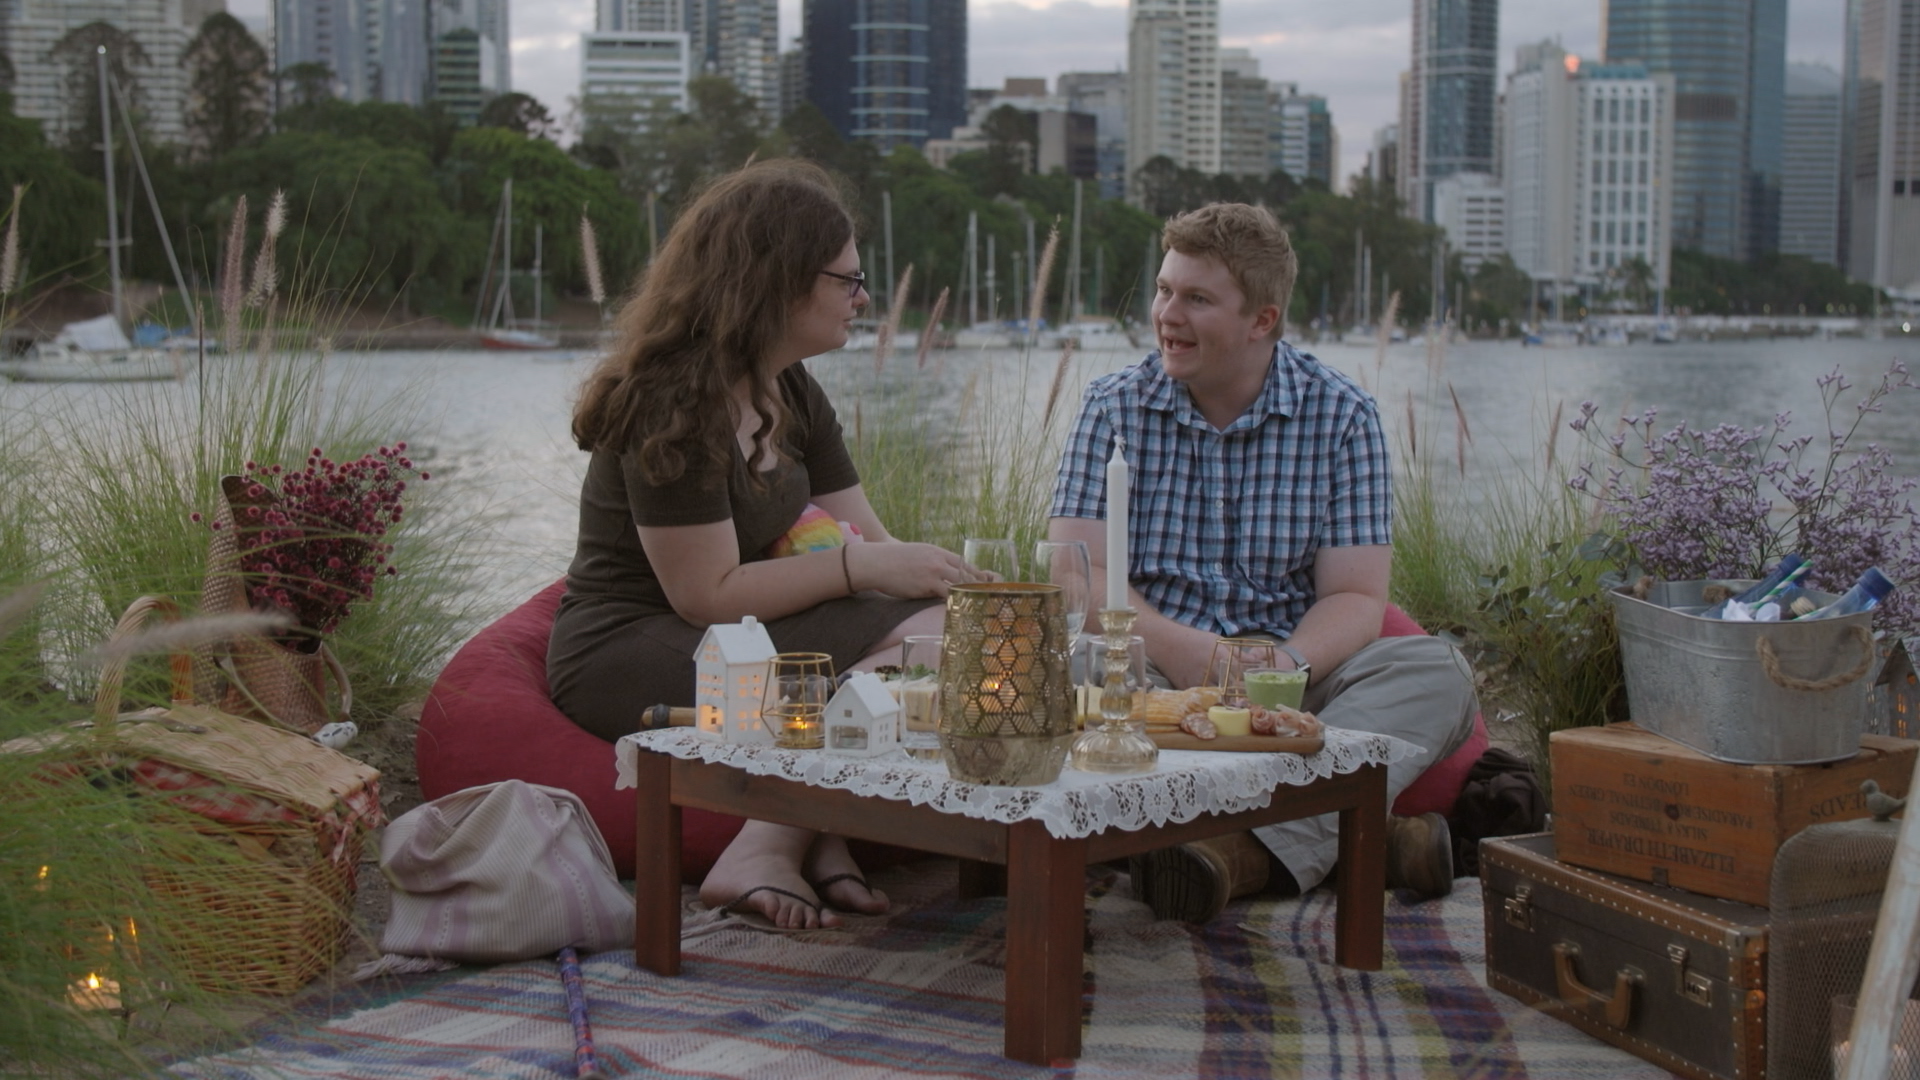 Ruth and Thomas in Netflix's 'Love on the Spectrum'